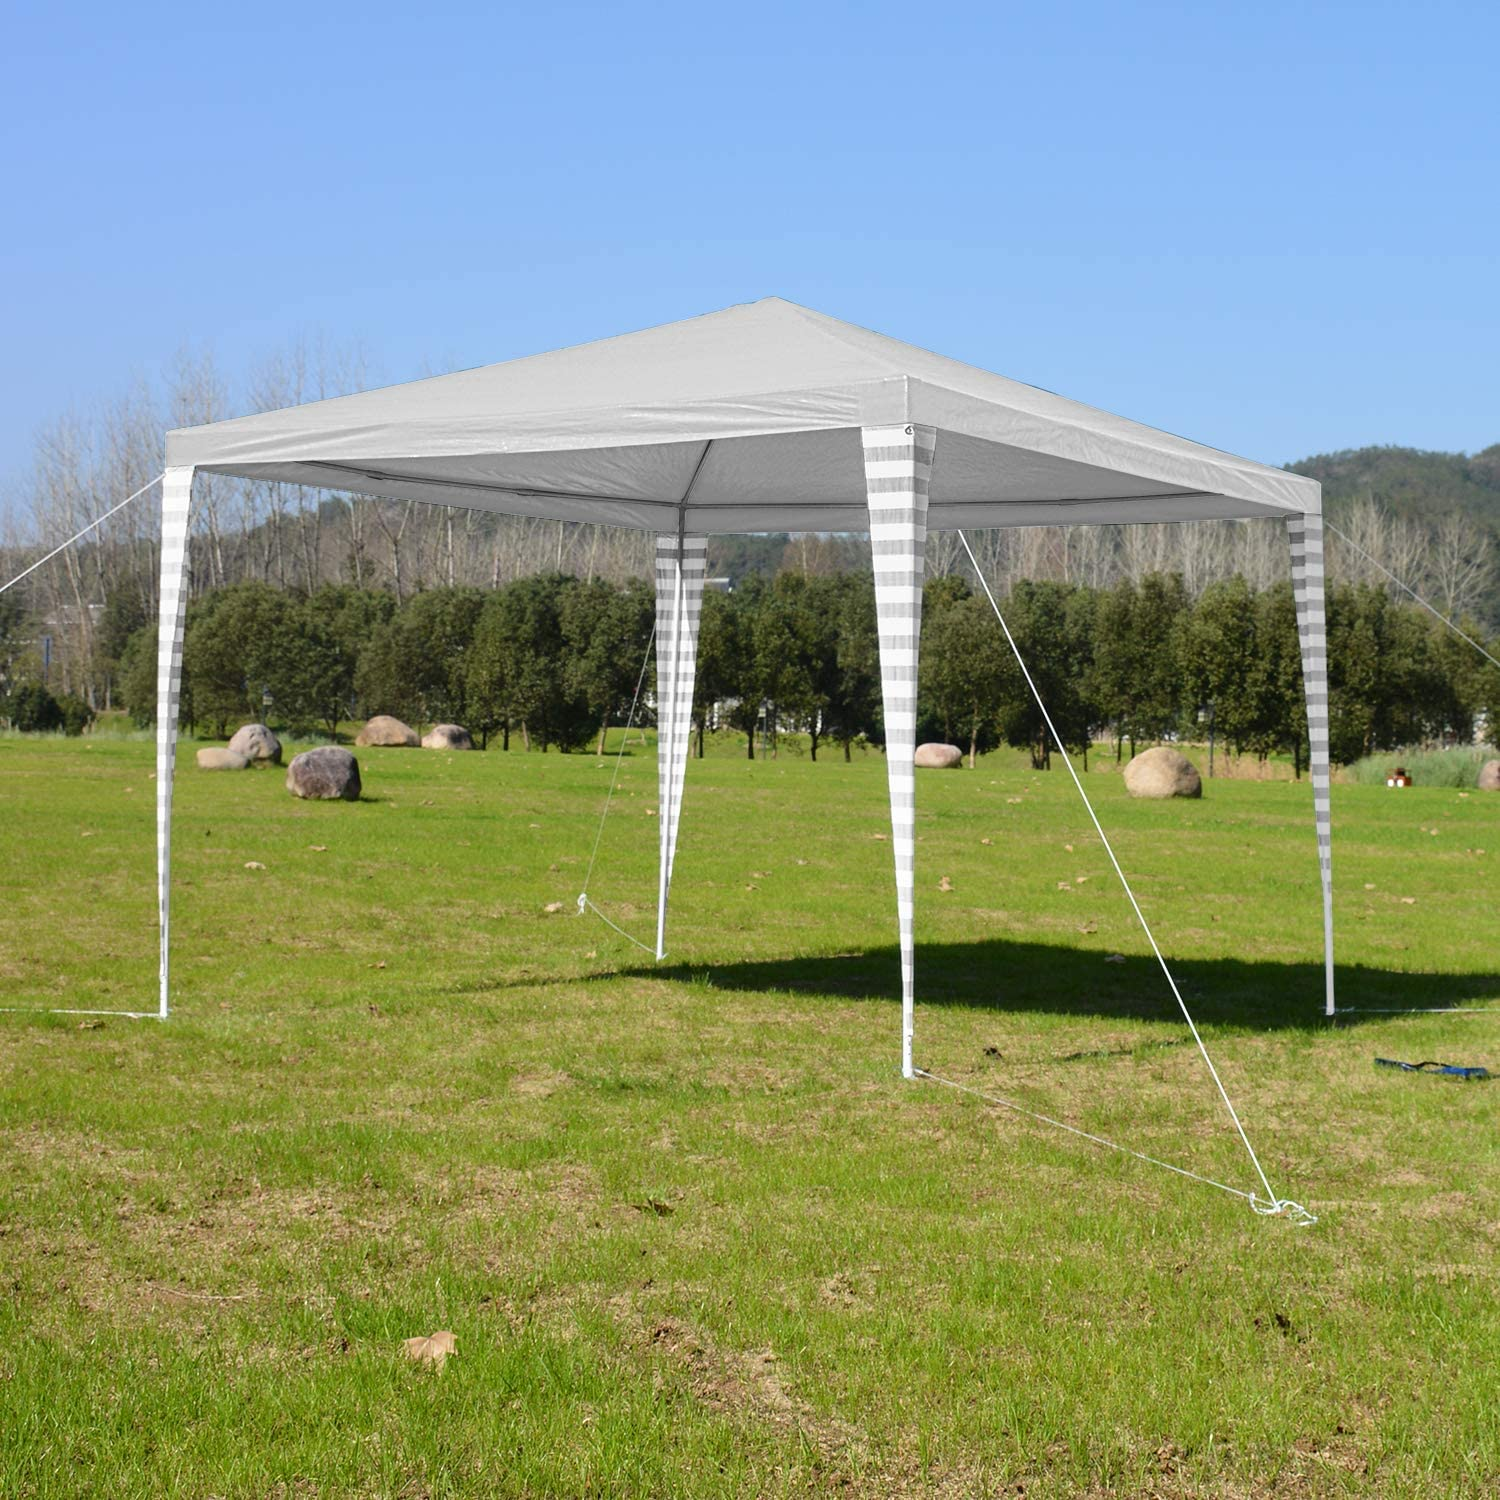 huigou 3x3m Carpas Pabellón Estable Carpa para Fiesta toldo Impermeables Gazebo Estable fácil de desplegar Costuras Selladas de PE: Amazon.es: Jardín